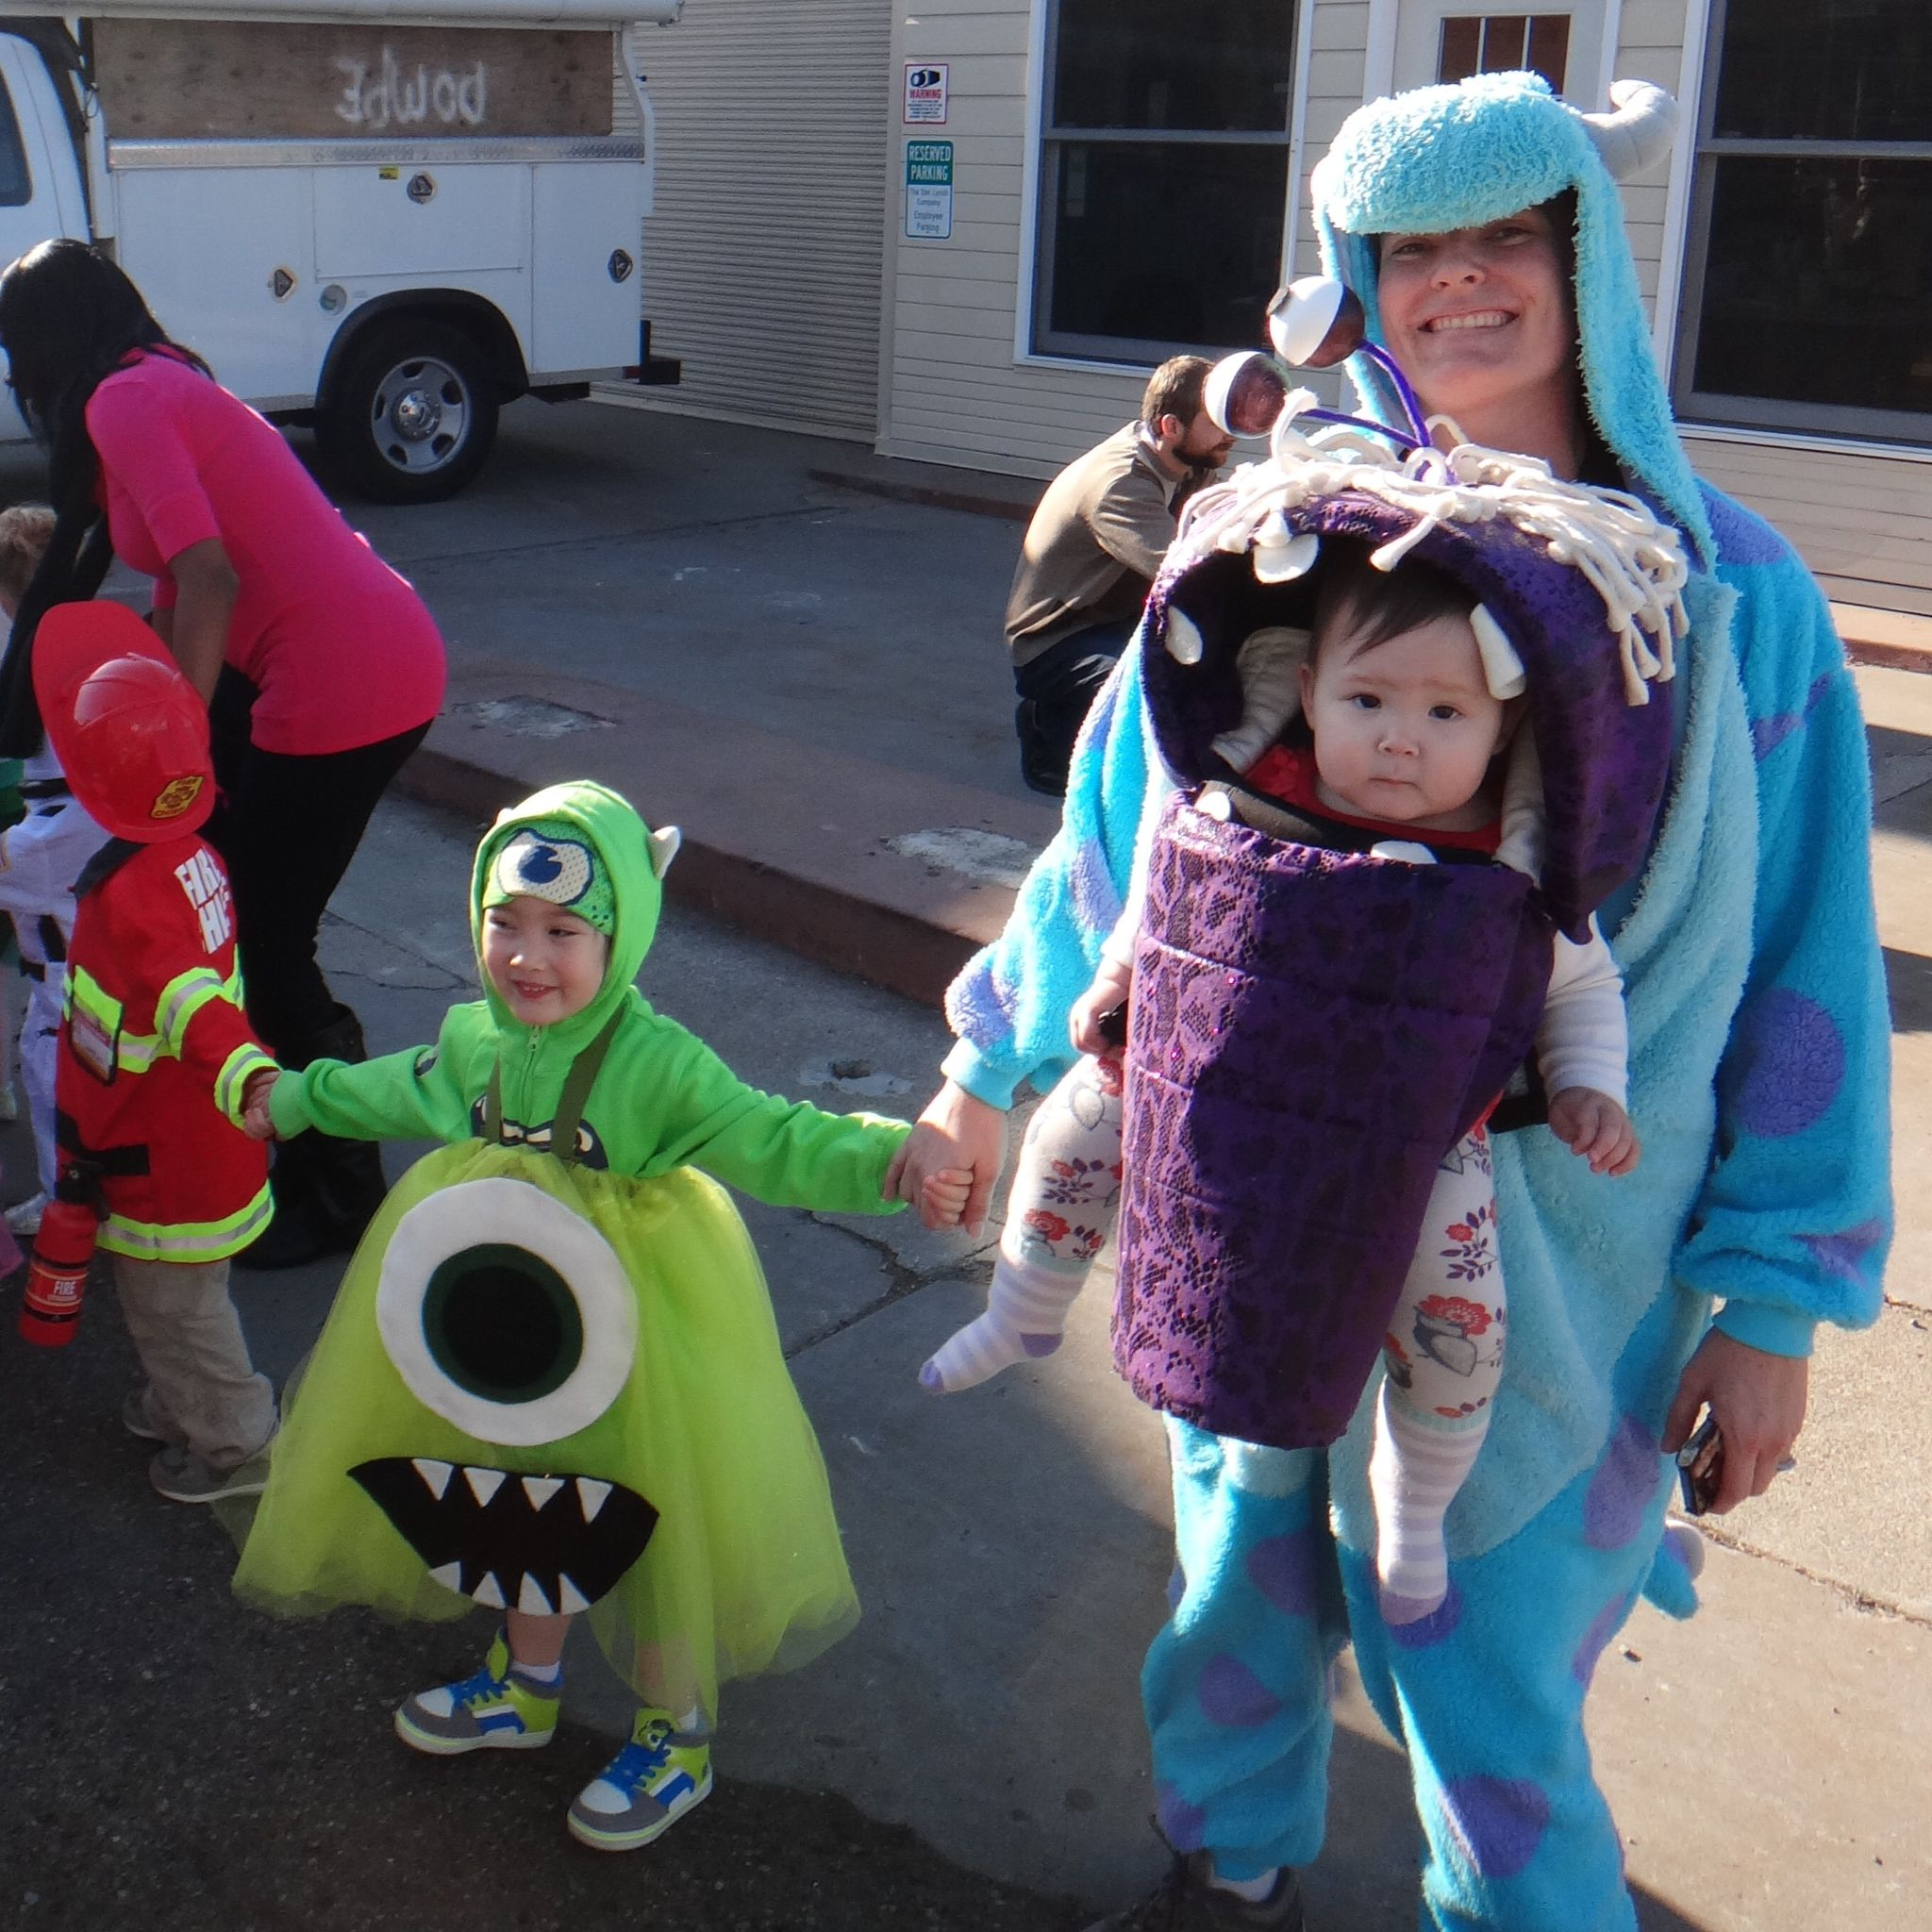 monstrous babywearing costume desiree and family as monsters from monsters inc - Monsters Inc Baby Halloween Costumes